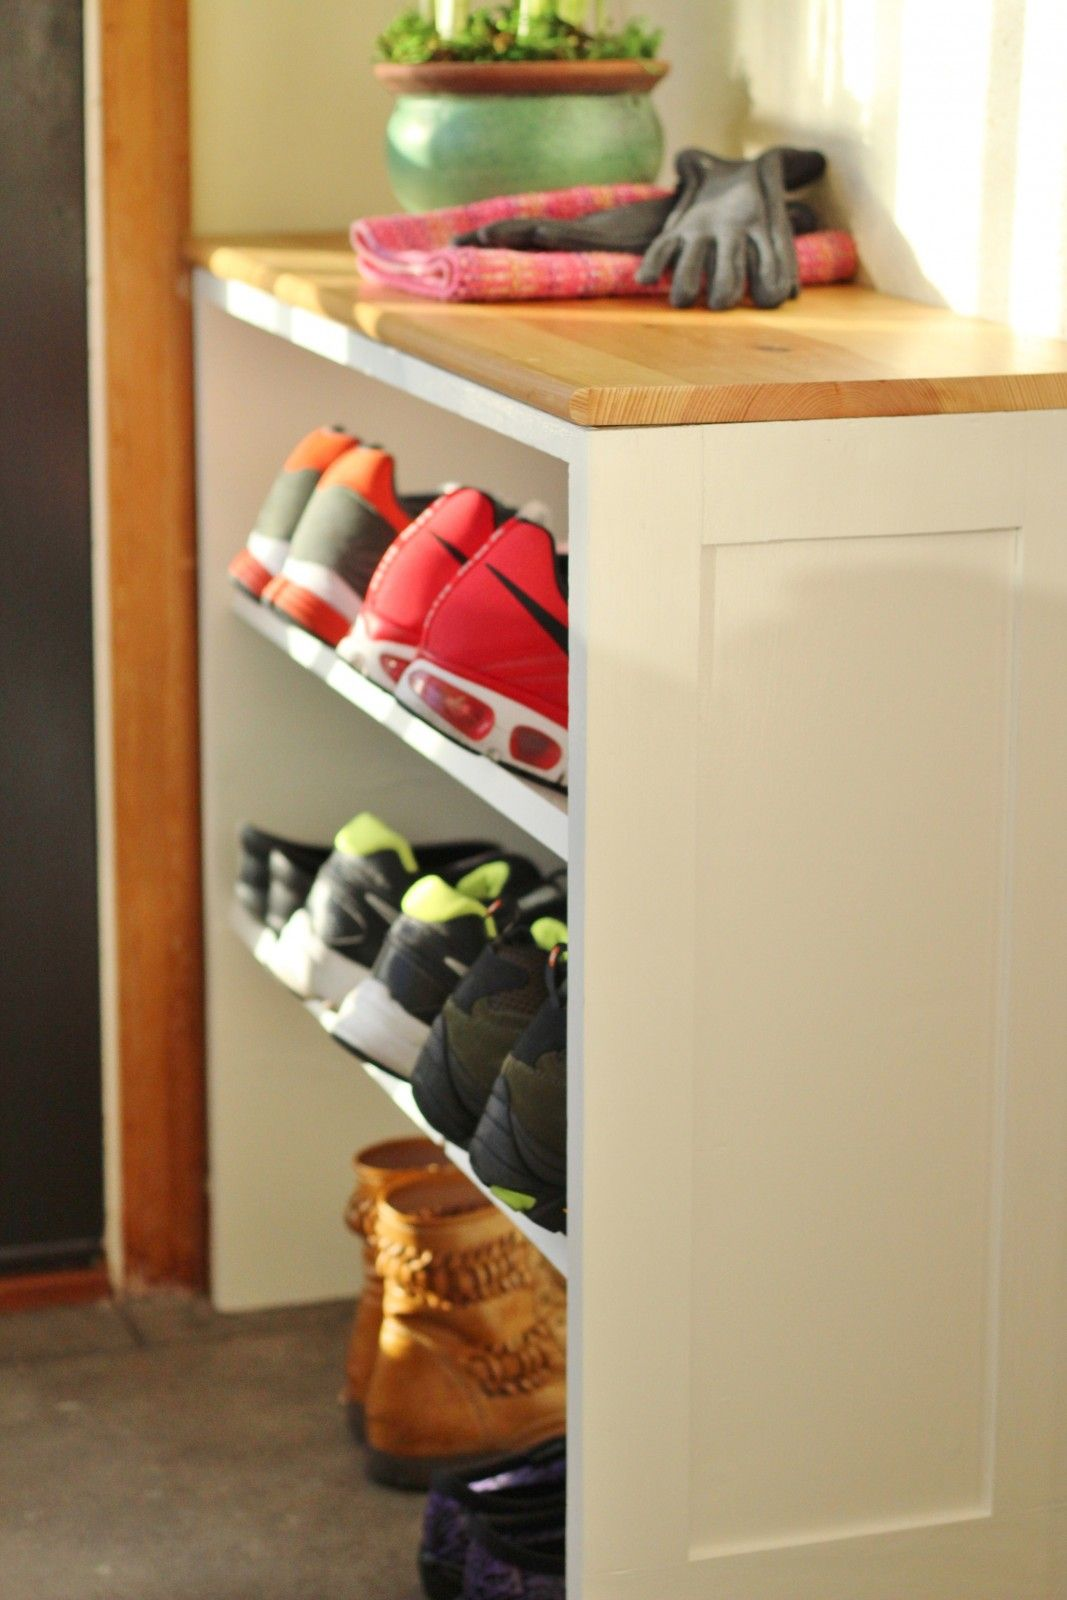 The Basic Plywood Shelving Unit Converted Into E Saving Shoe Storage By Angling Shelves So Large Men S Shoes Are Easier To Contain